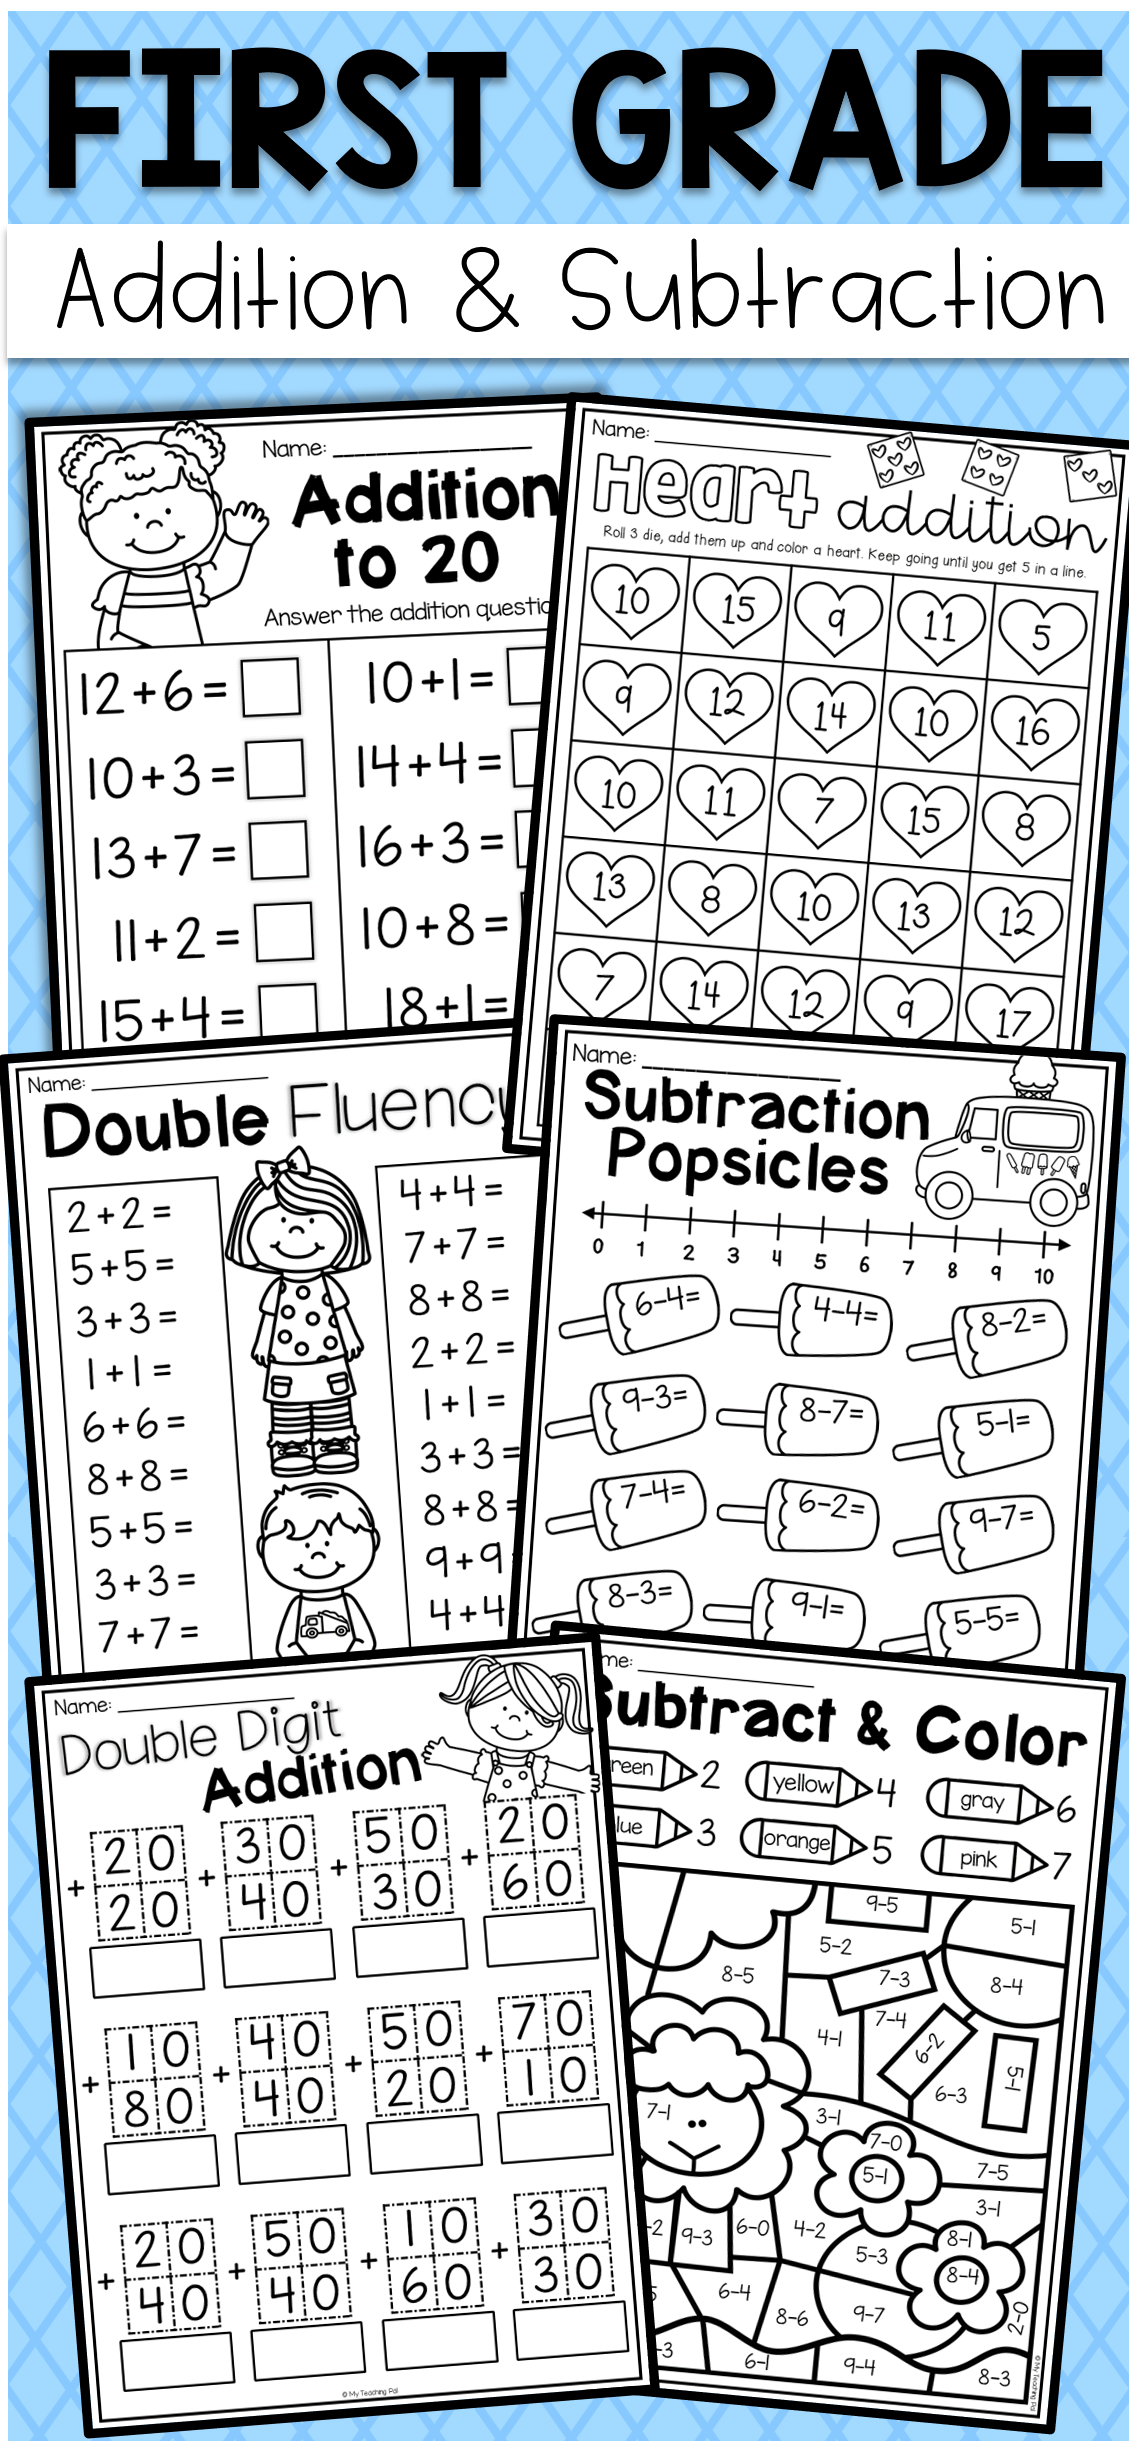 First Grade Addition And Subtraction Worksheets